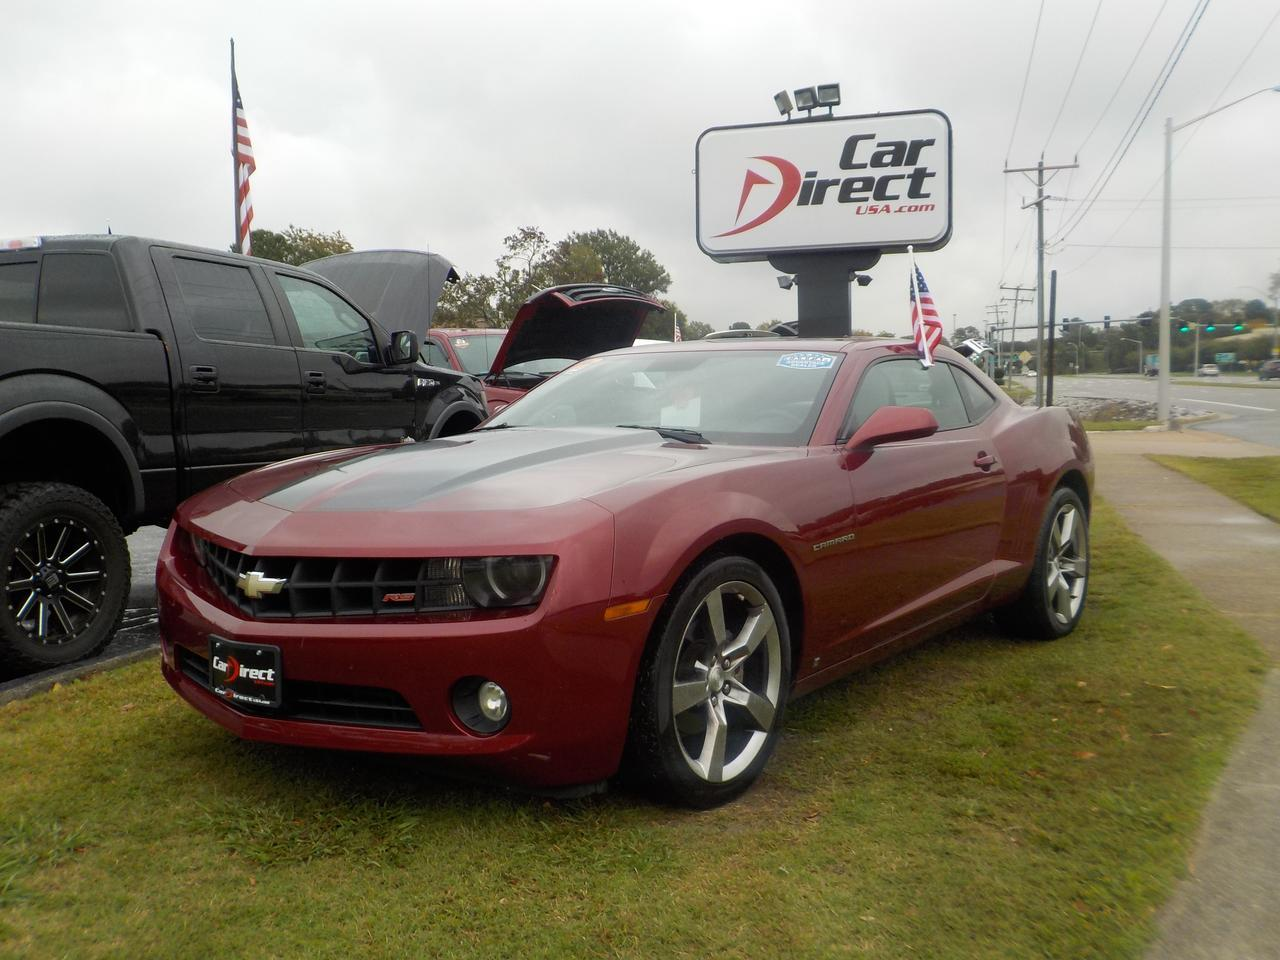 2010 CHEVROLET CAMARO LT2 COUPE, WARRANTY, LOW MILES, LEATHER, SUNROOF, GORGEOUS COLOR COMBO, ON SALE!!!